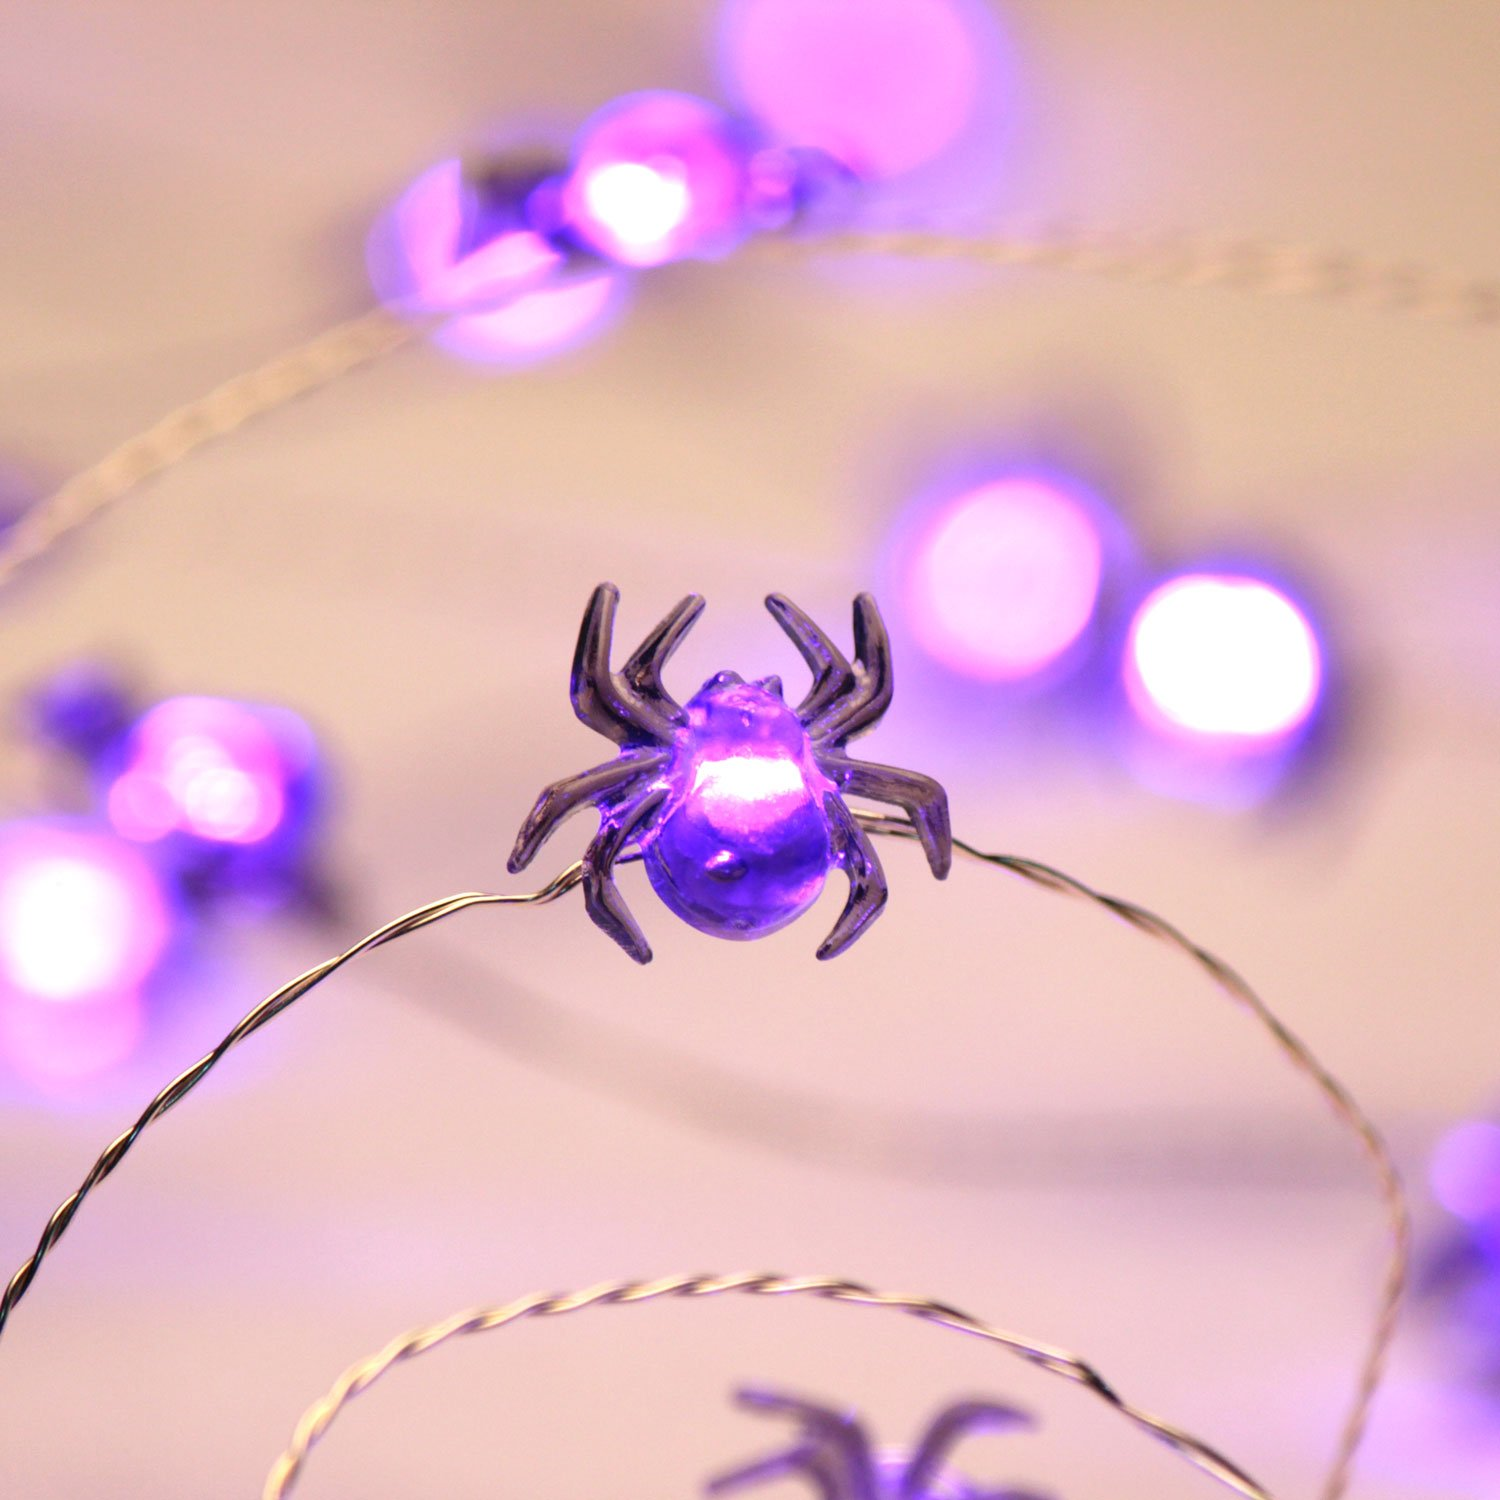 10ft 40 LEDs Battery Operated with Dimmable House Impress Life Christmas Costume Party Spooky Spider String Lights Bedroom Decoration LDSP10SD Patio Flicker Remote for Front Porch Trick or Treat Welcome